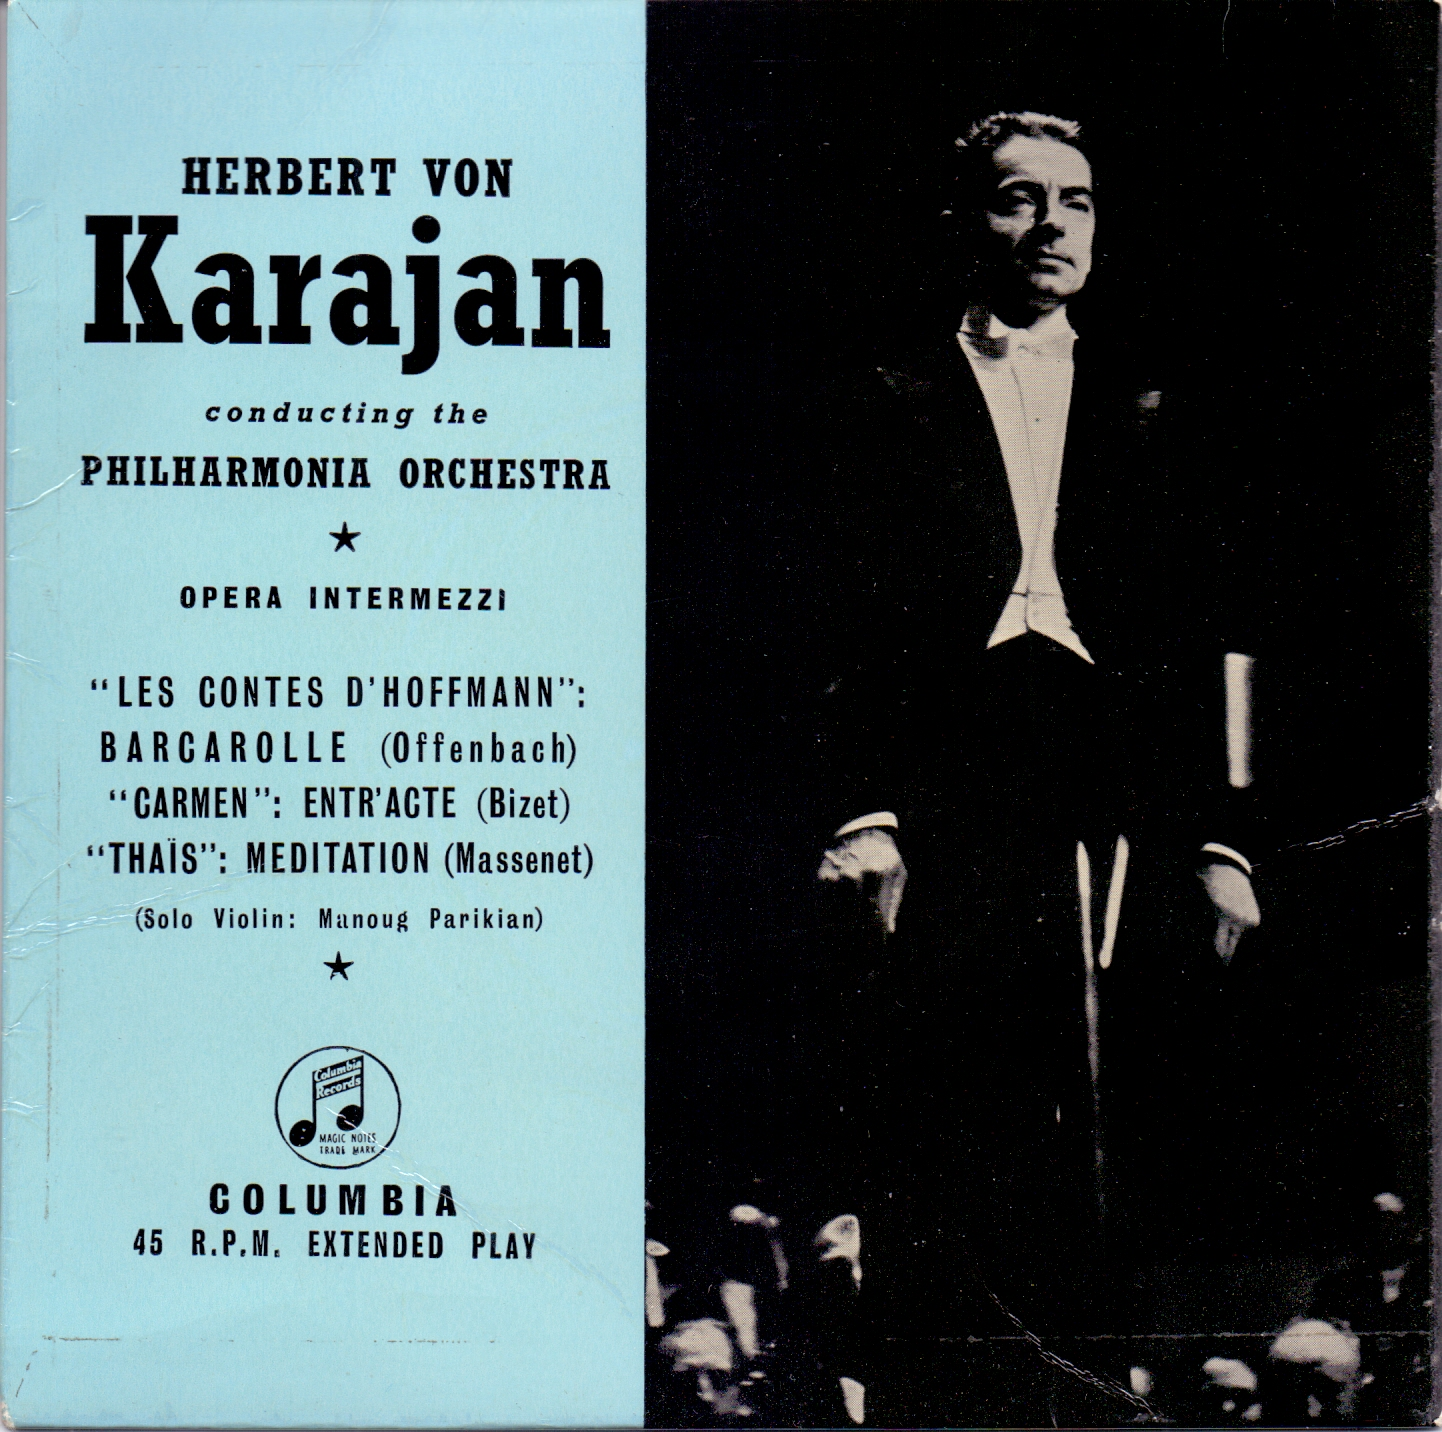 HERBERT VON KARAJAN CONDUCTING THE PHILHARMONIA OR - Opera Intermezzi - 45T x 1